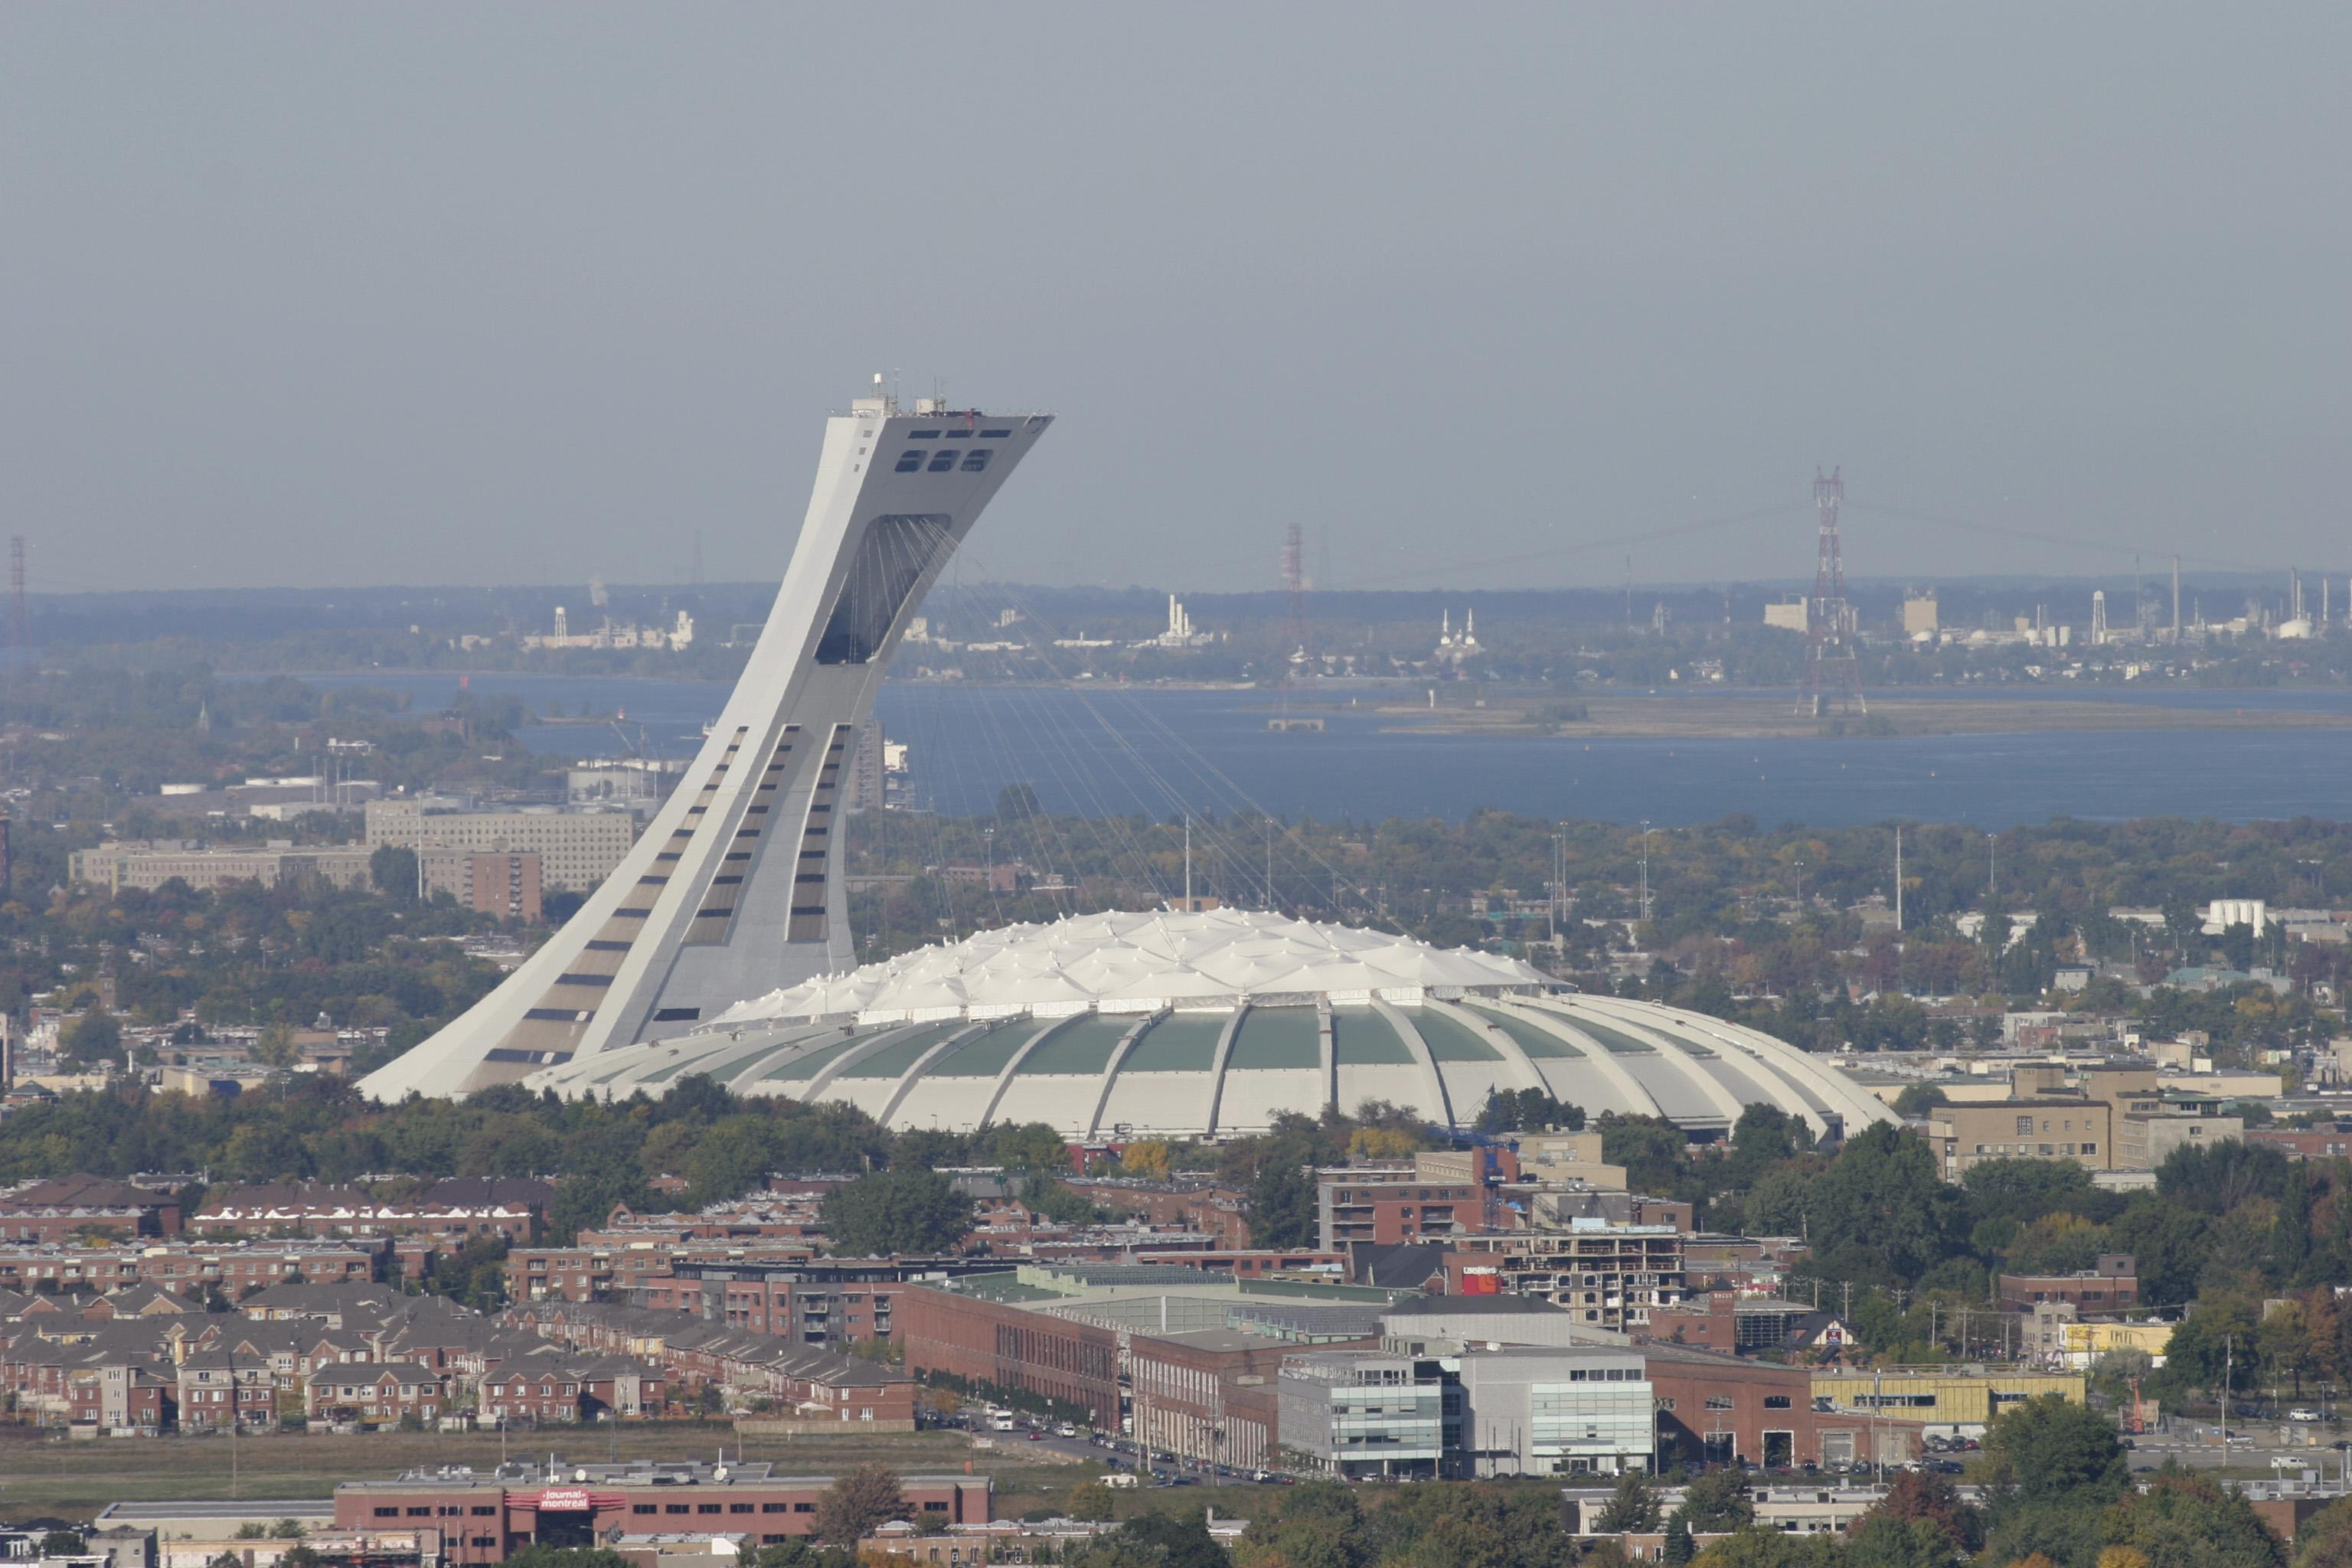 The Montreal Olympic Stadium was opened for the 1976 Games